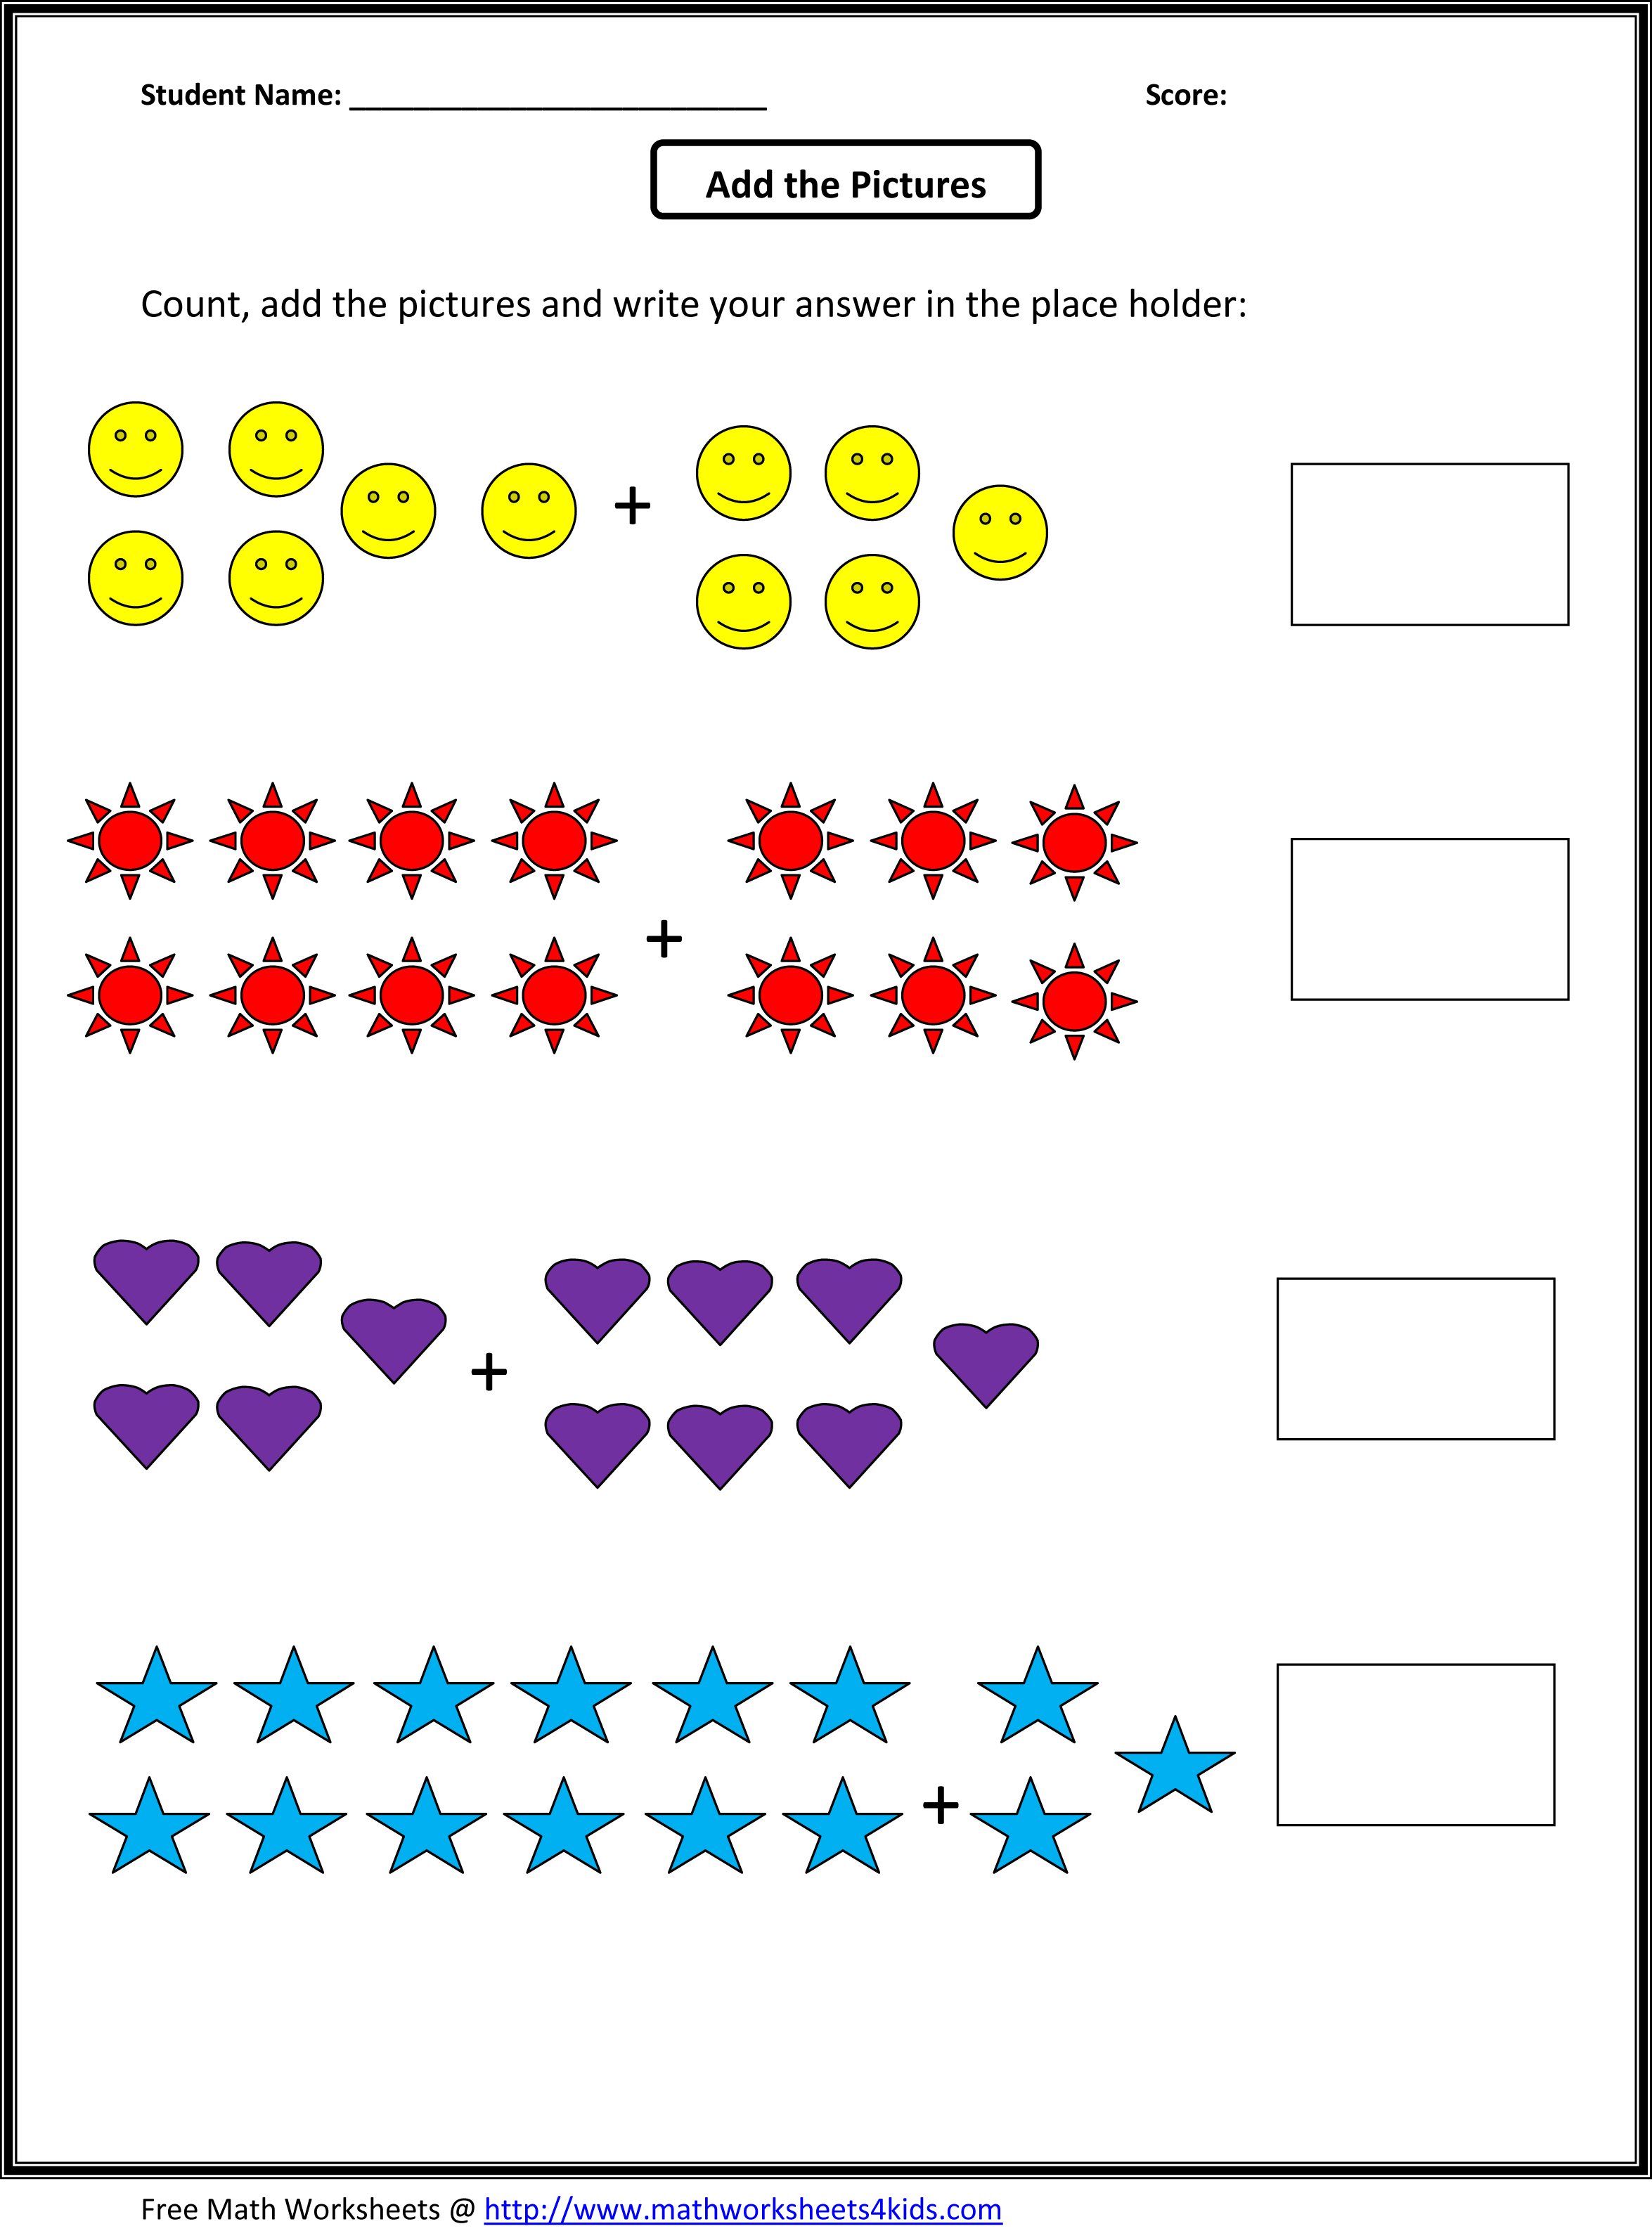 Proatmealus  Wonderful Grade  Maths Worksheet  Reocurent With Heavenly Math Worksheets For St Grade Free  Reocurent With Beauteous Range Mode Median And Mean Worksheets Also Worksheets For Homonyms In Addition Addition Drills Worksheets And Activities Worksheets For Kids As Well As Static Electricity Worksheet Grade  Additionally Identifying Rocks Worksheet From Reocurentcom With Proatmealus  Heavenly Grade  Maths Worksheet  Reocurent With Beauteous Math Worksheets For St Grade Free  Reocurent And Wonderful Range Mode Median And Mean Worksheets Also Worksheets For Homonyms In Addition Addition Drills Worksheets From Reocurentcom